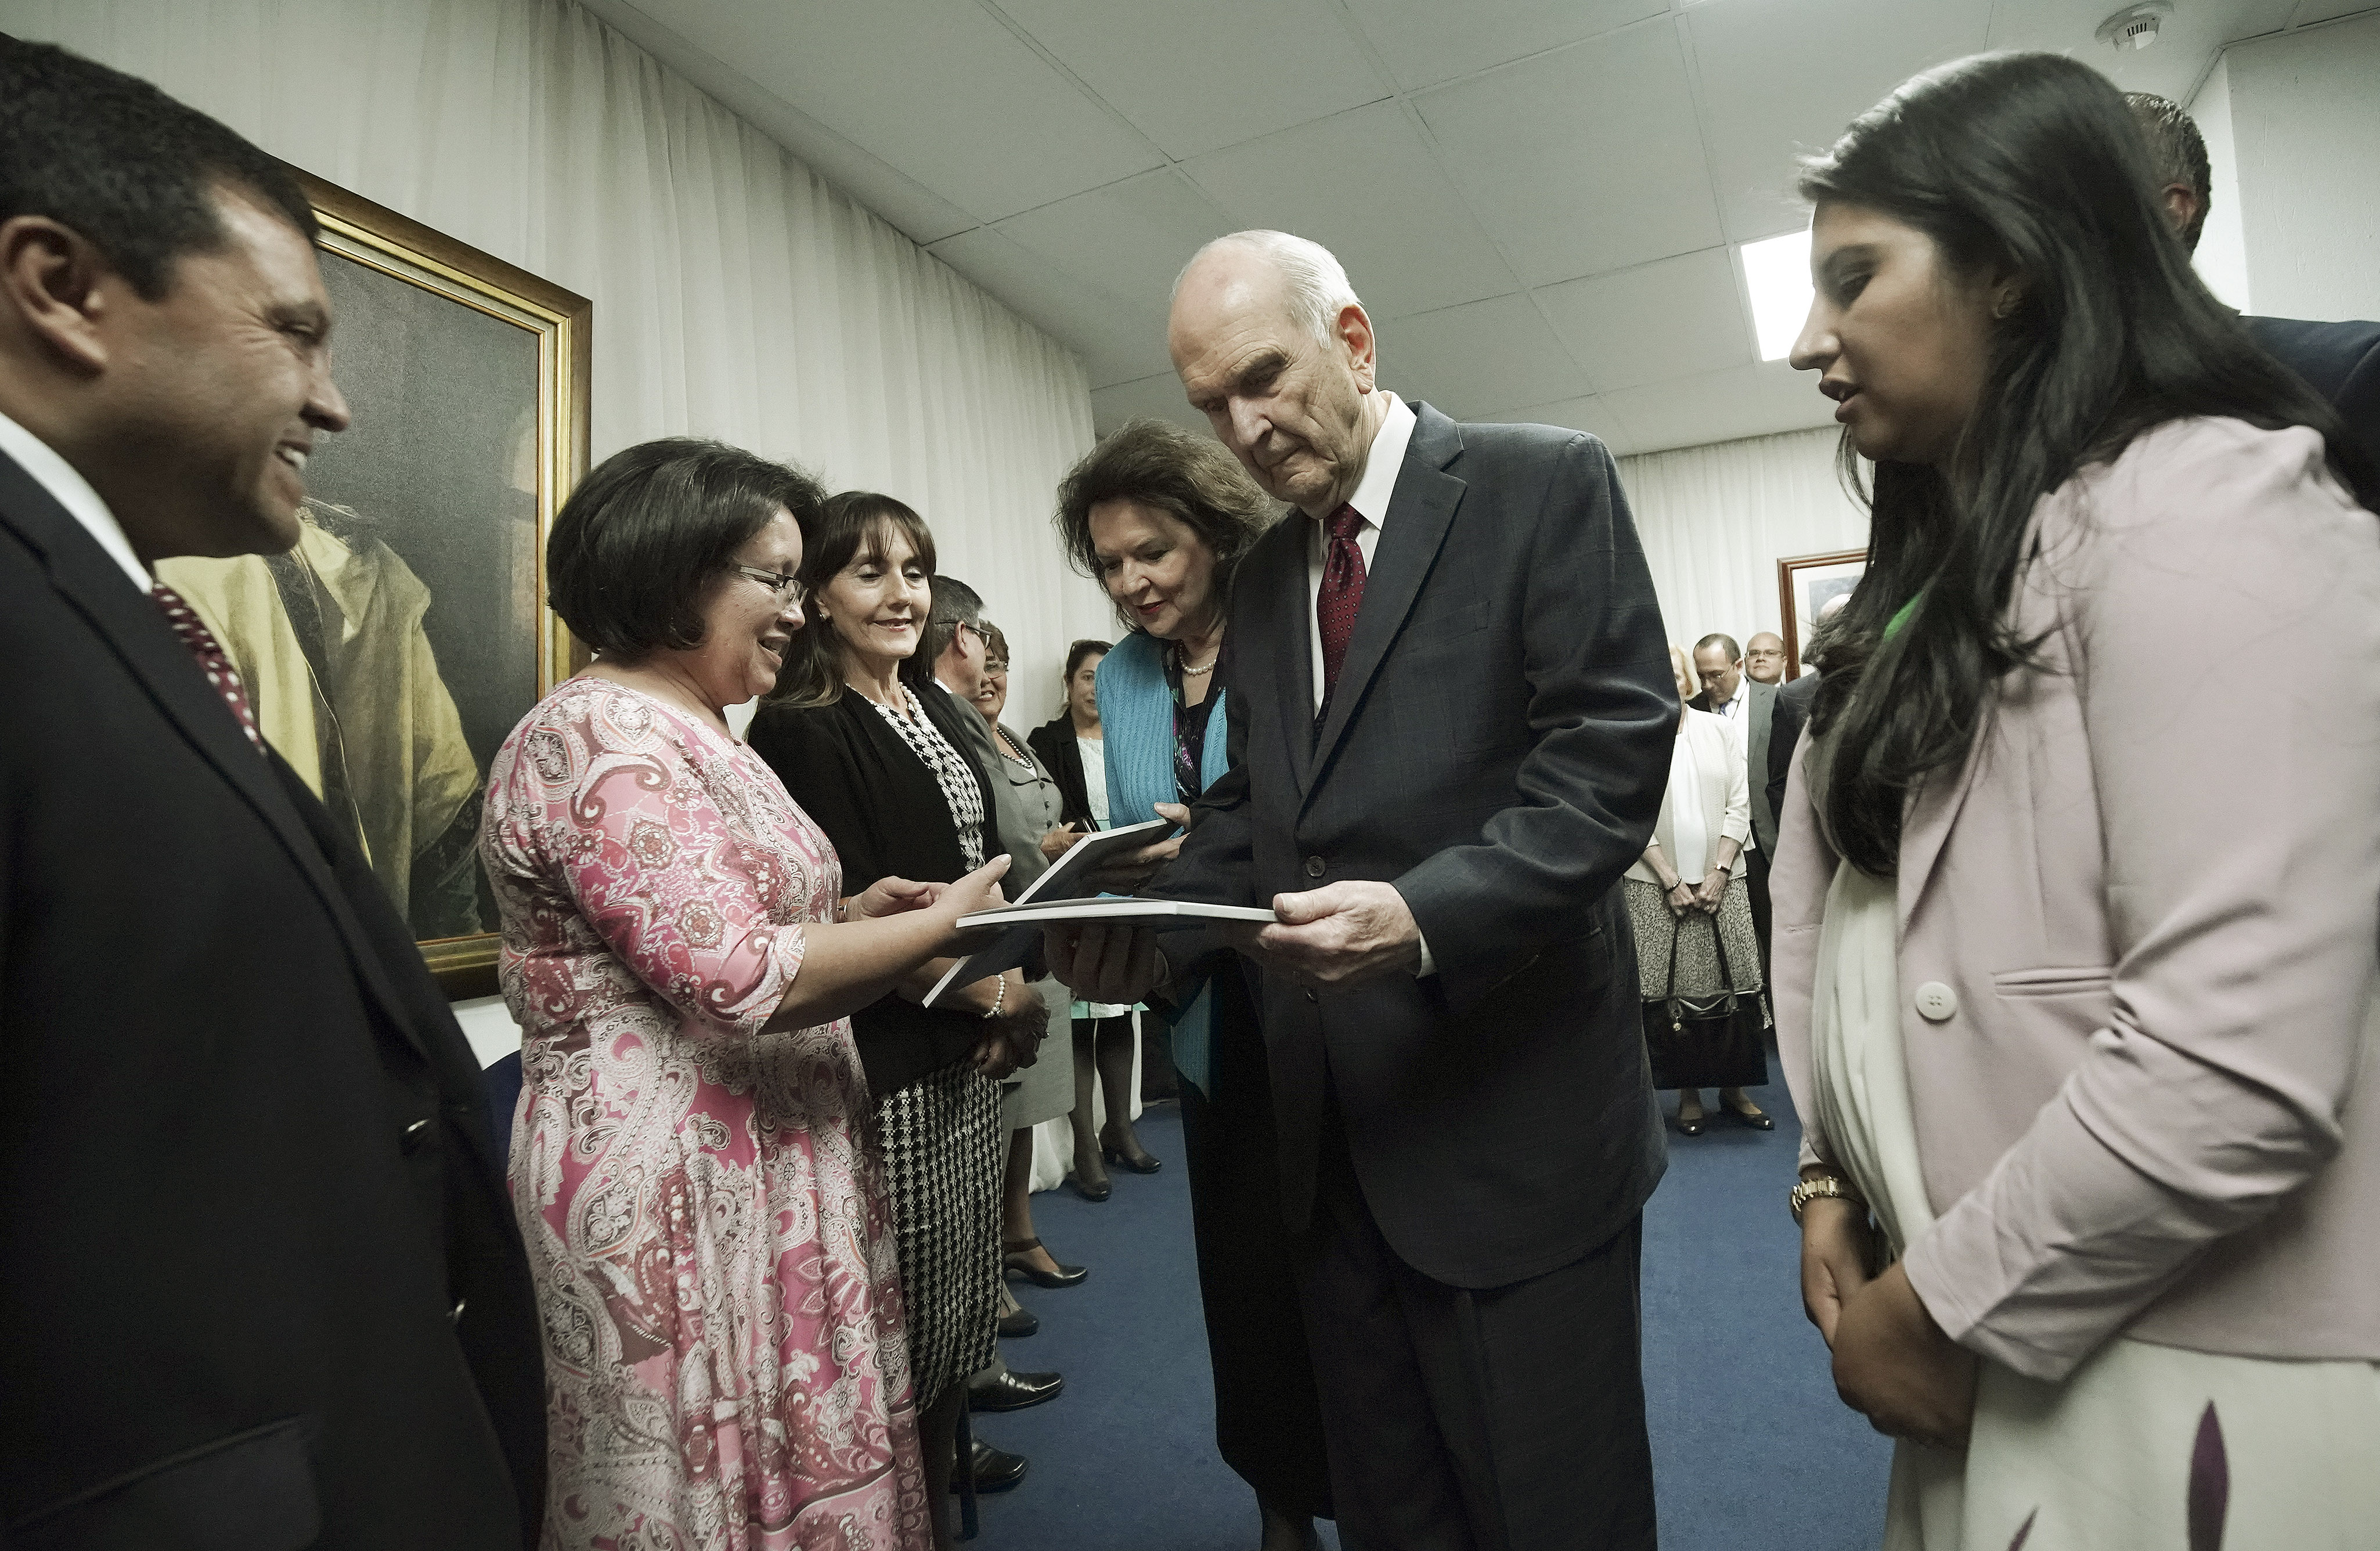 President Russell M. Nelson of The Church of Jesus Christ of Latter-day Saints visits with people prior to a devotional in Quito, Ecuador, on Monday, Aug. 26, 2019.